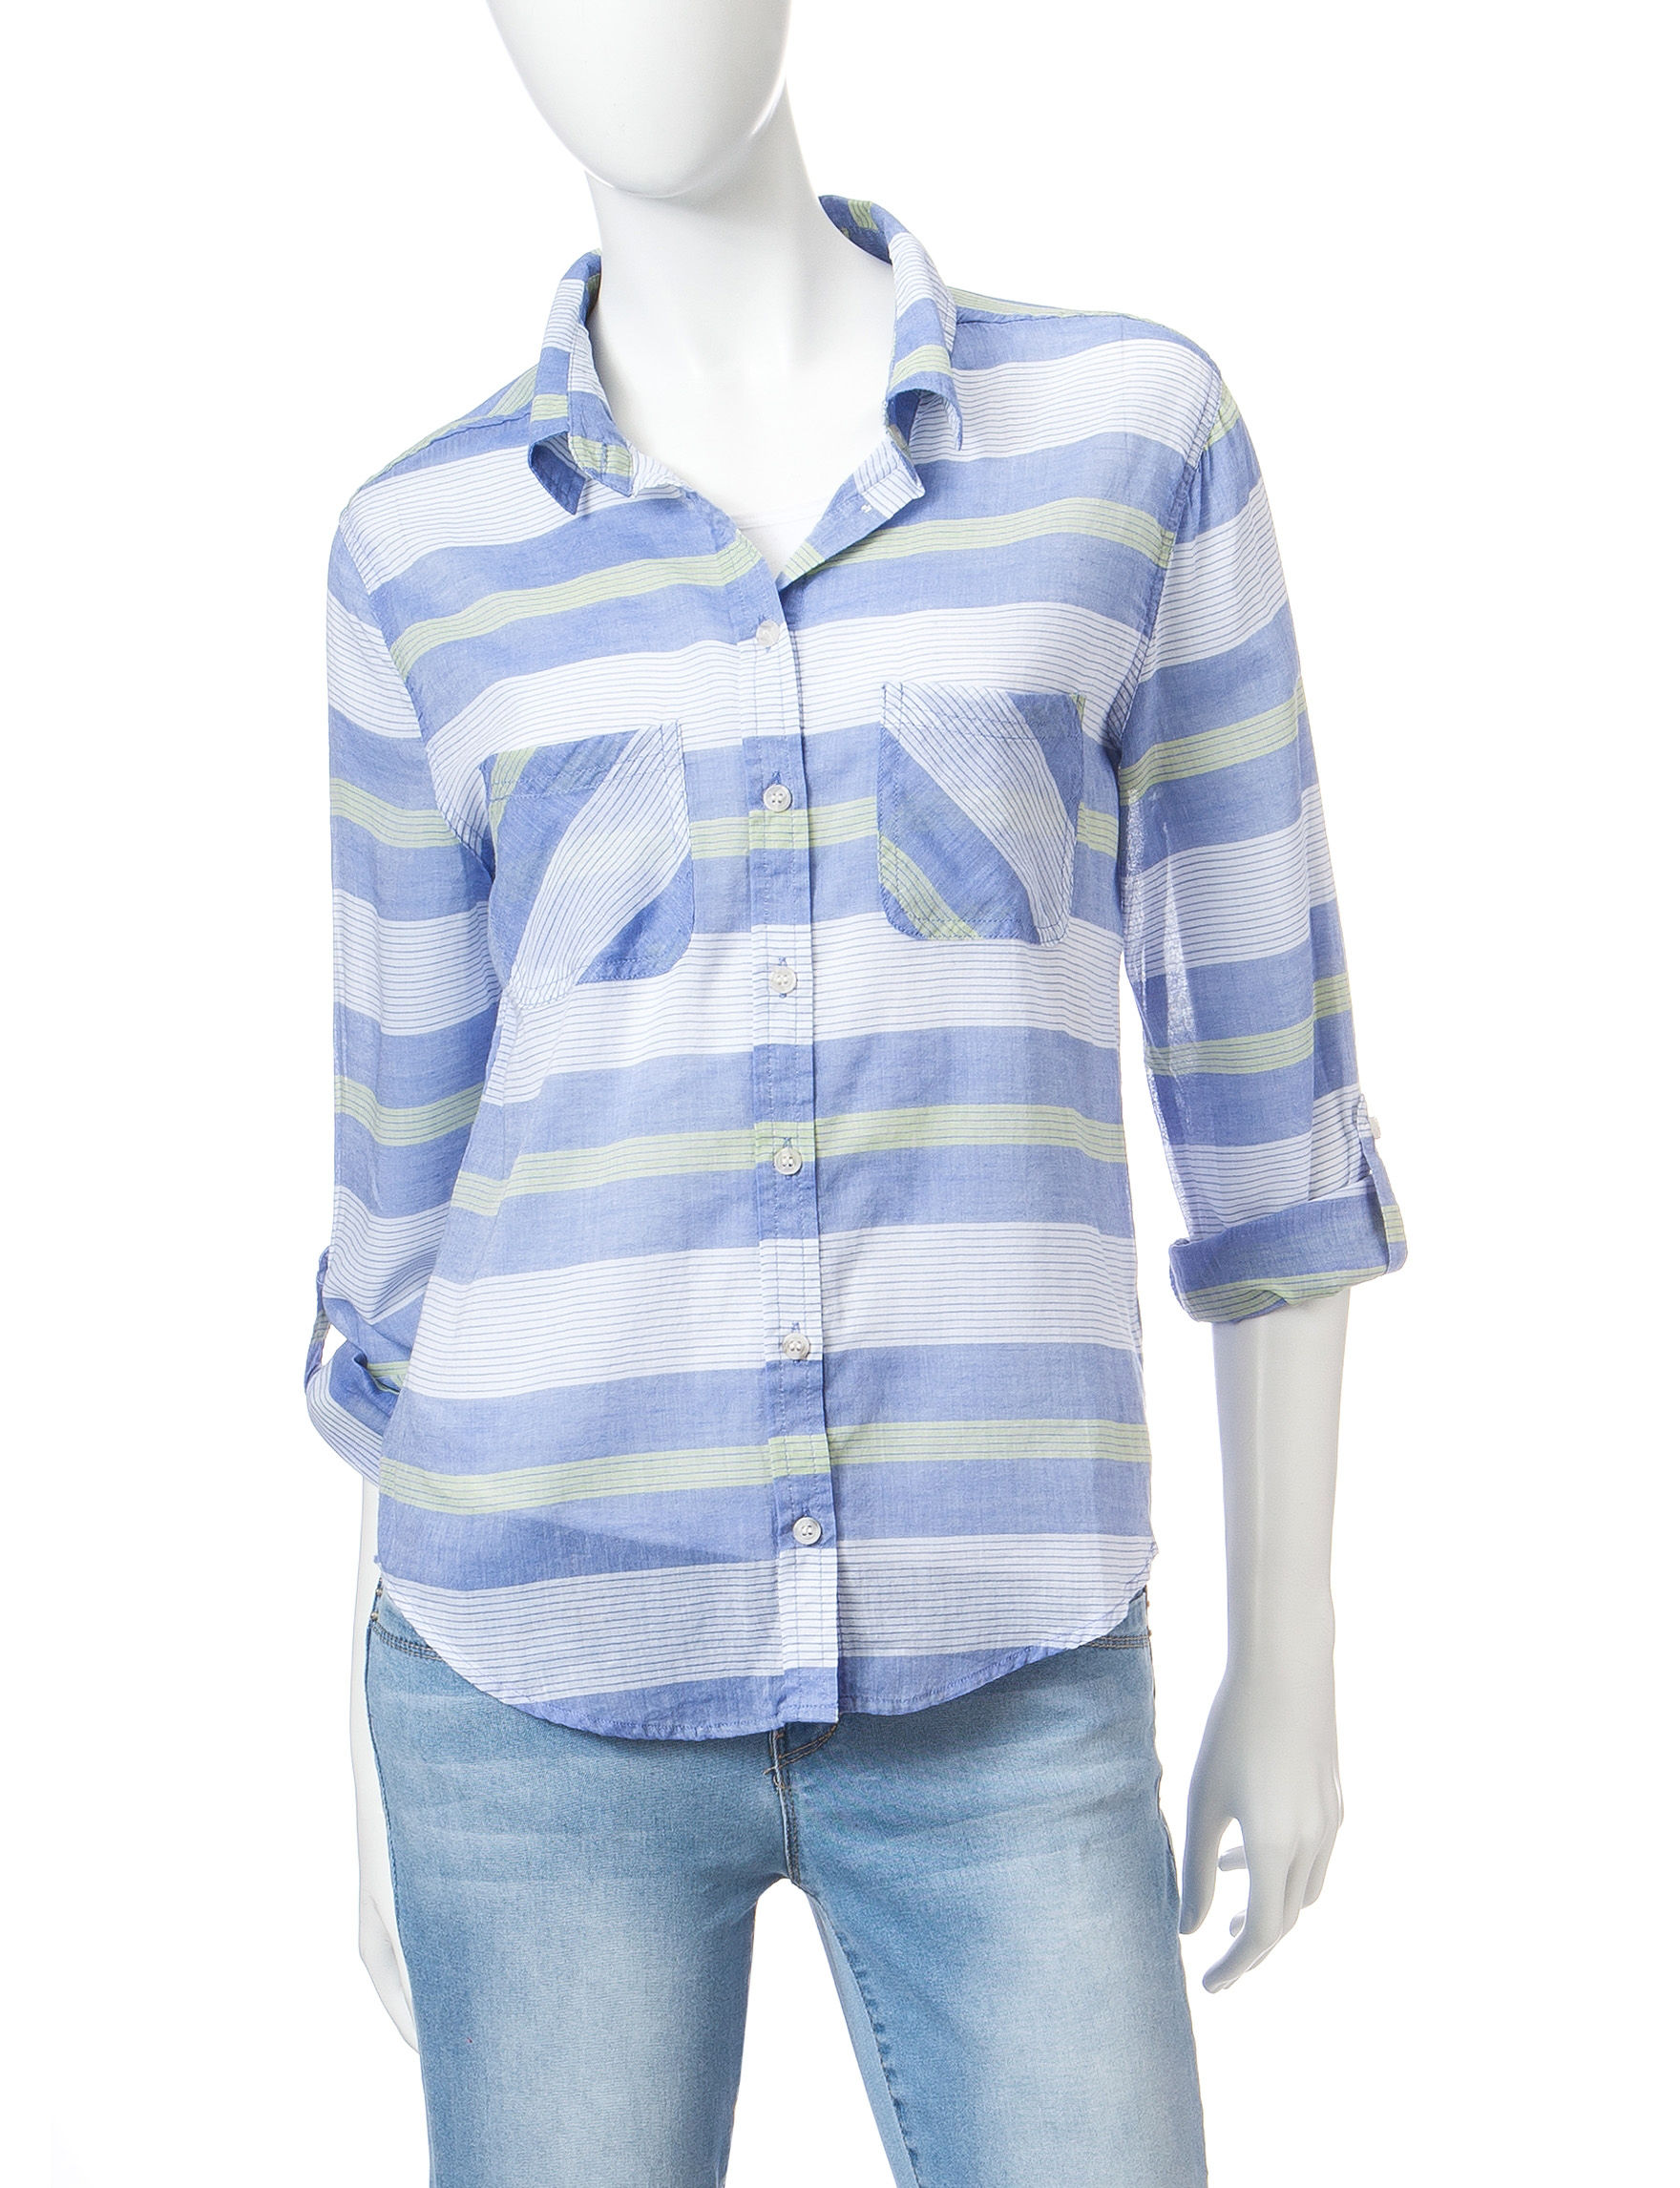 Wishful Park Blue Stripe Casual Button Down Shirts